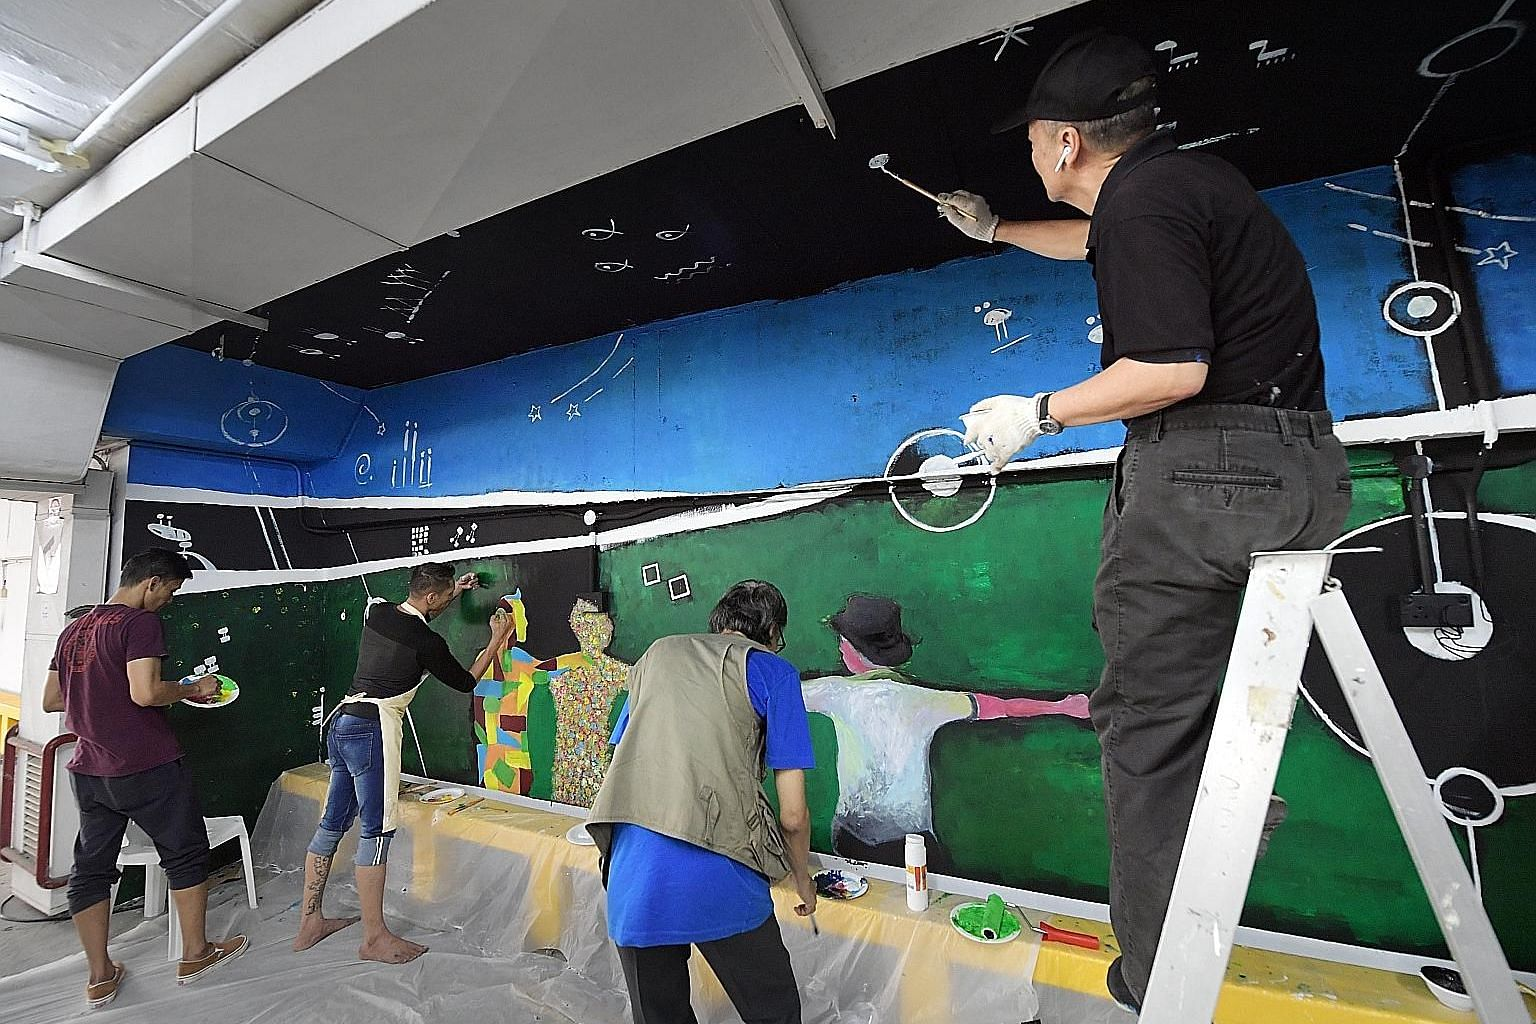 Renowned sculptor Sun Yu-li (far right) and a group of former offenders giving a fresh look to Parklane Shopping Mall's carpark by painting a mural on one of its walls yesterday. Called Turning Points, the mural was designed and painted by Sun, artis